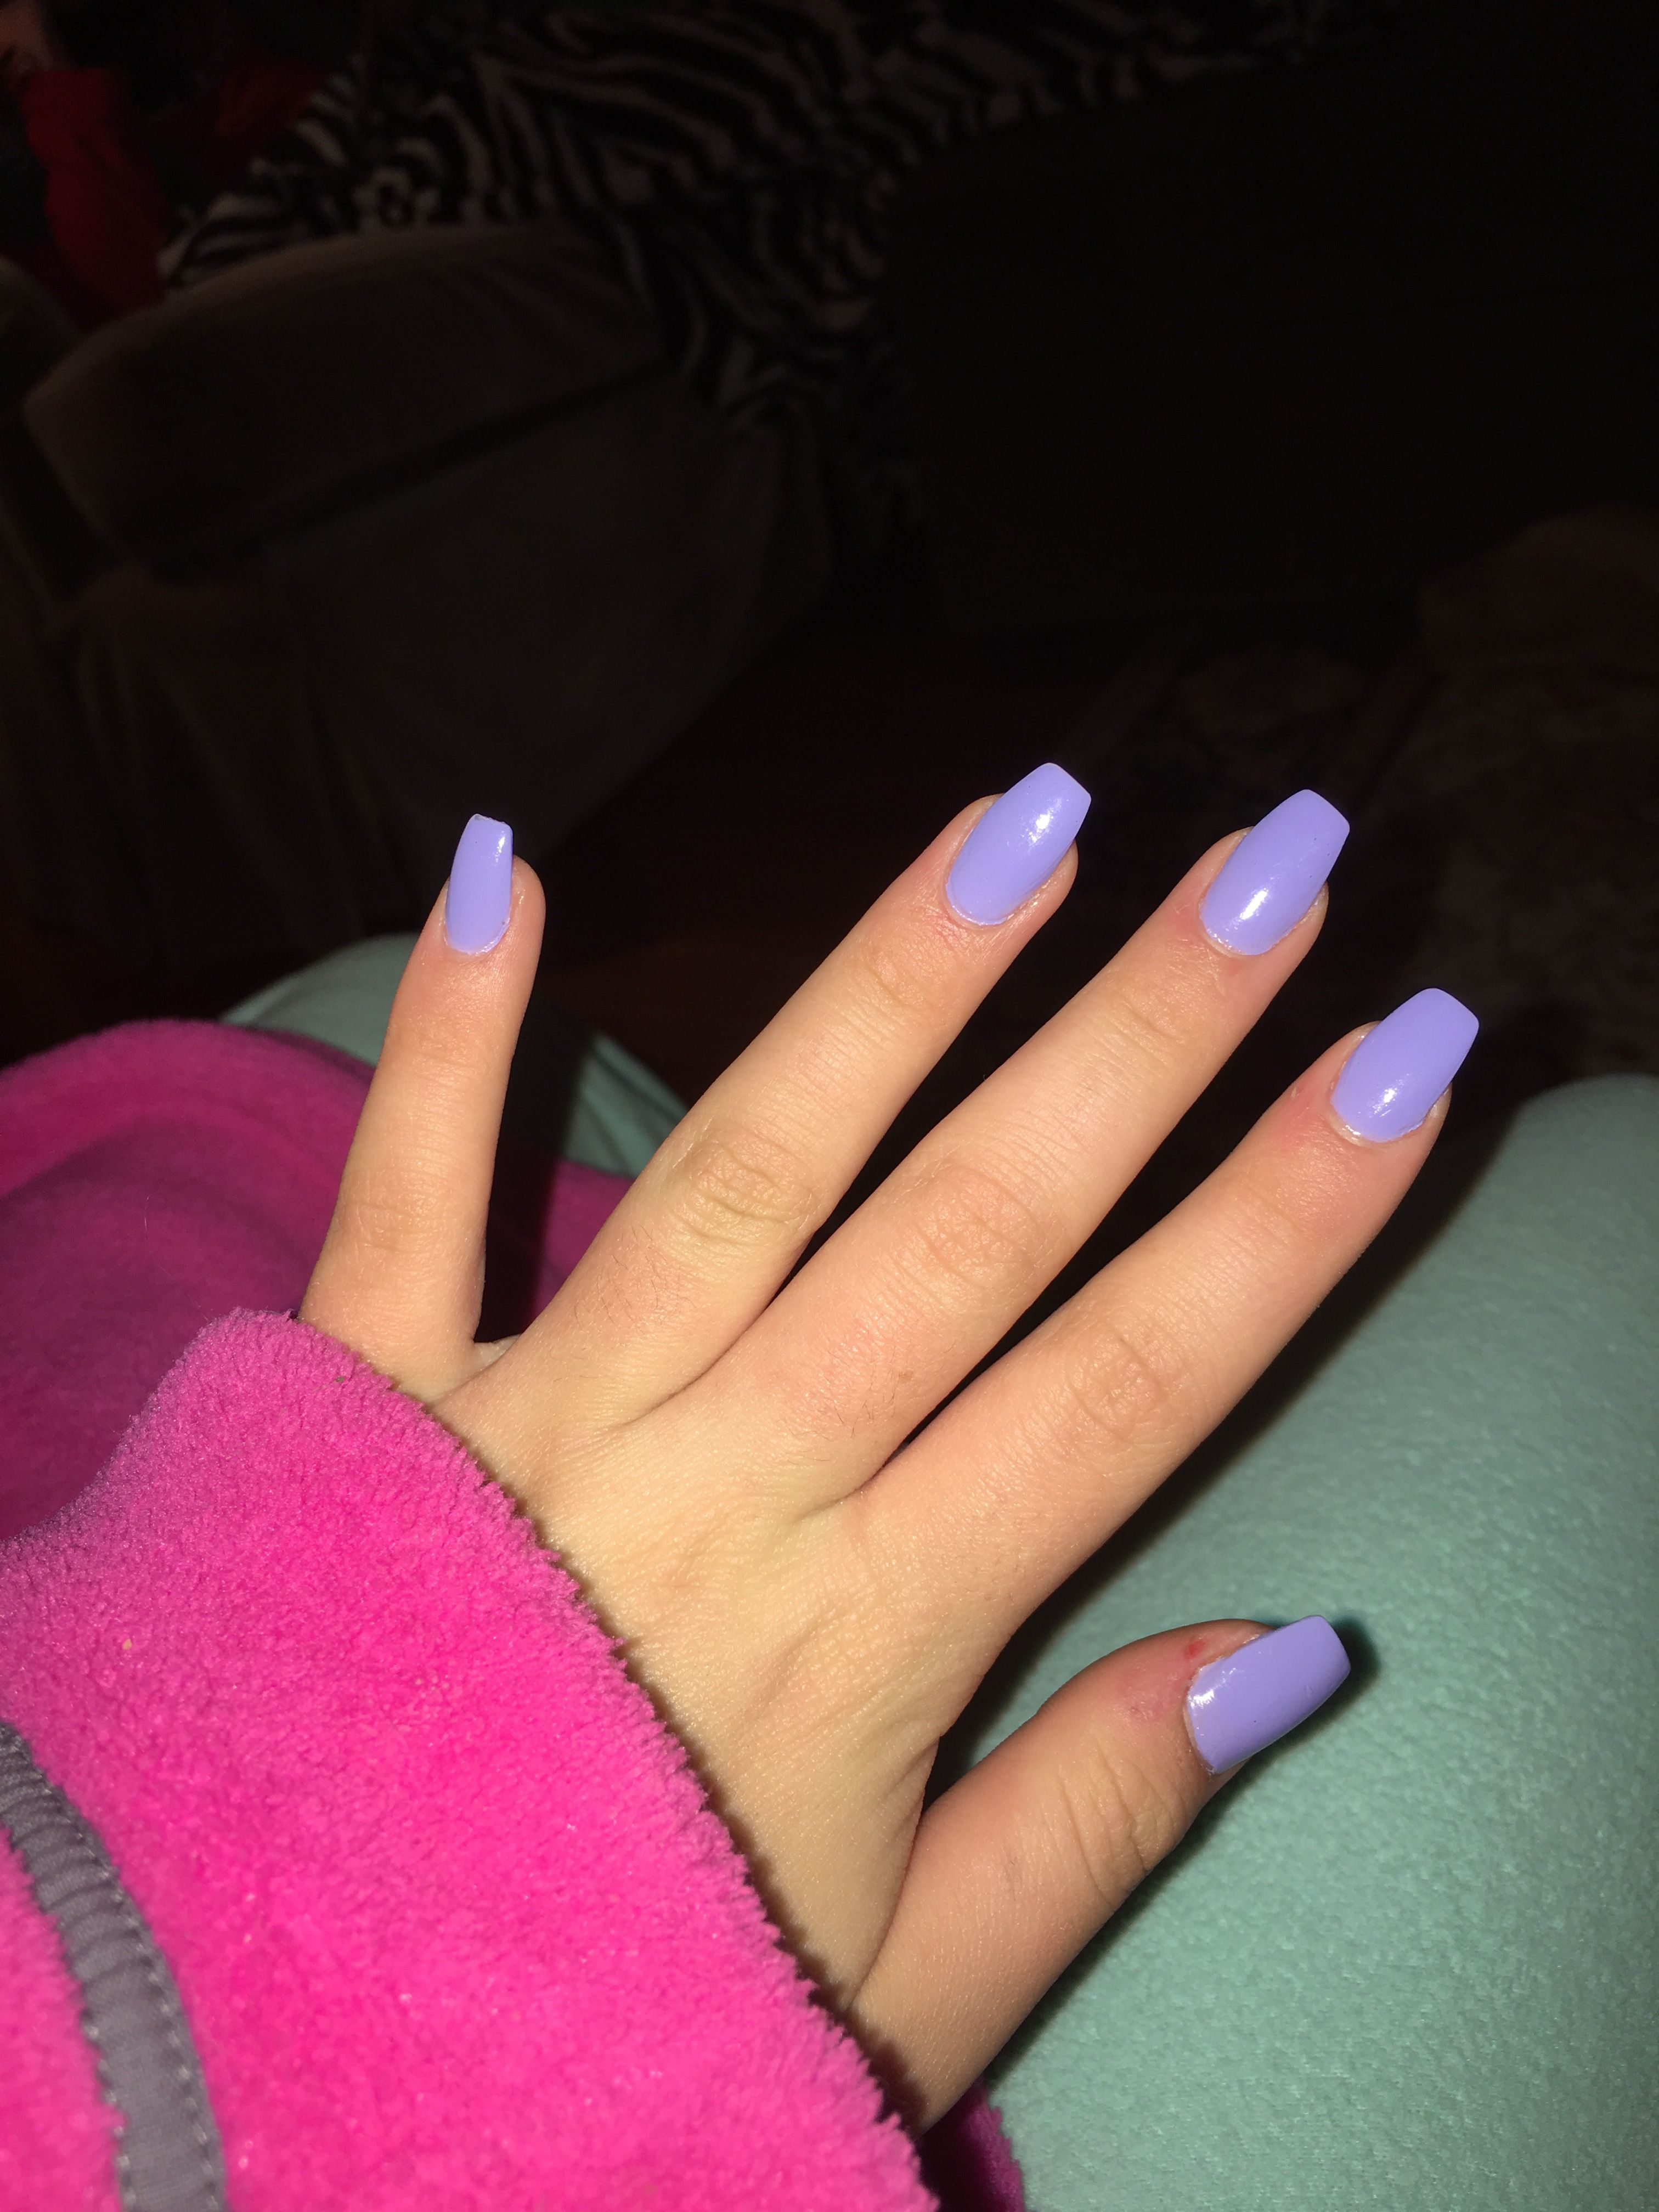 Short Lavender Coffin Nails | Short Lavender Coffin Nails ...